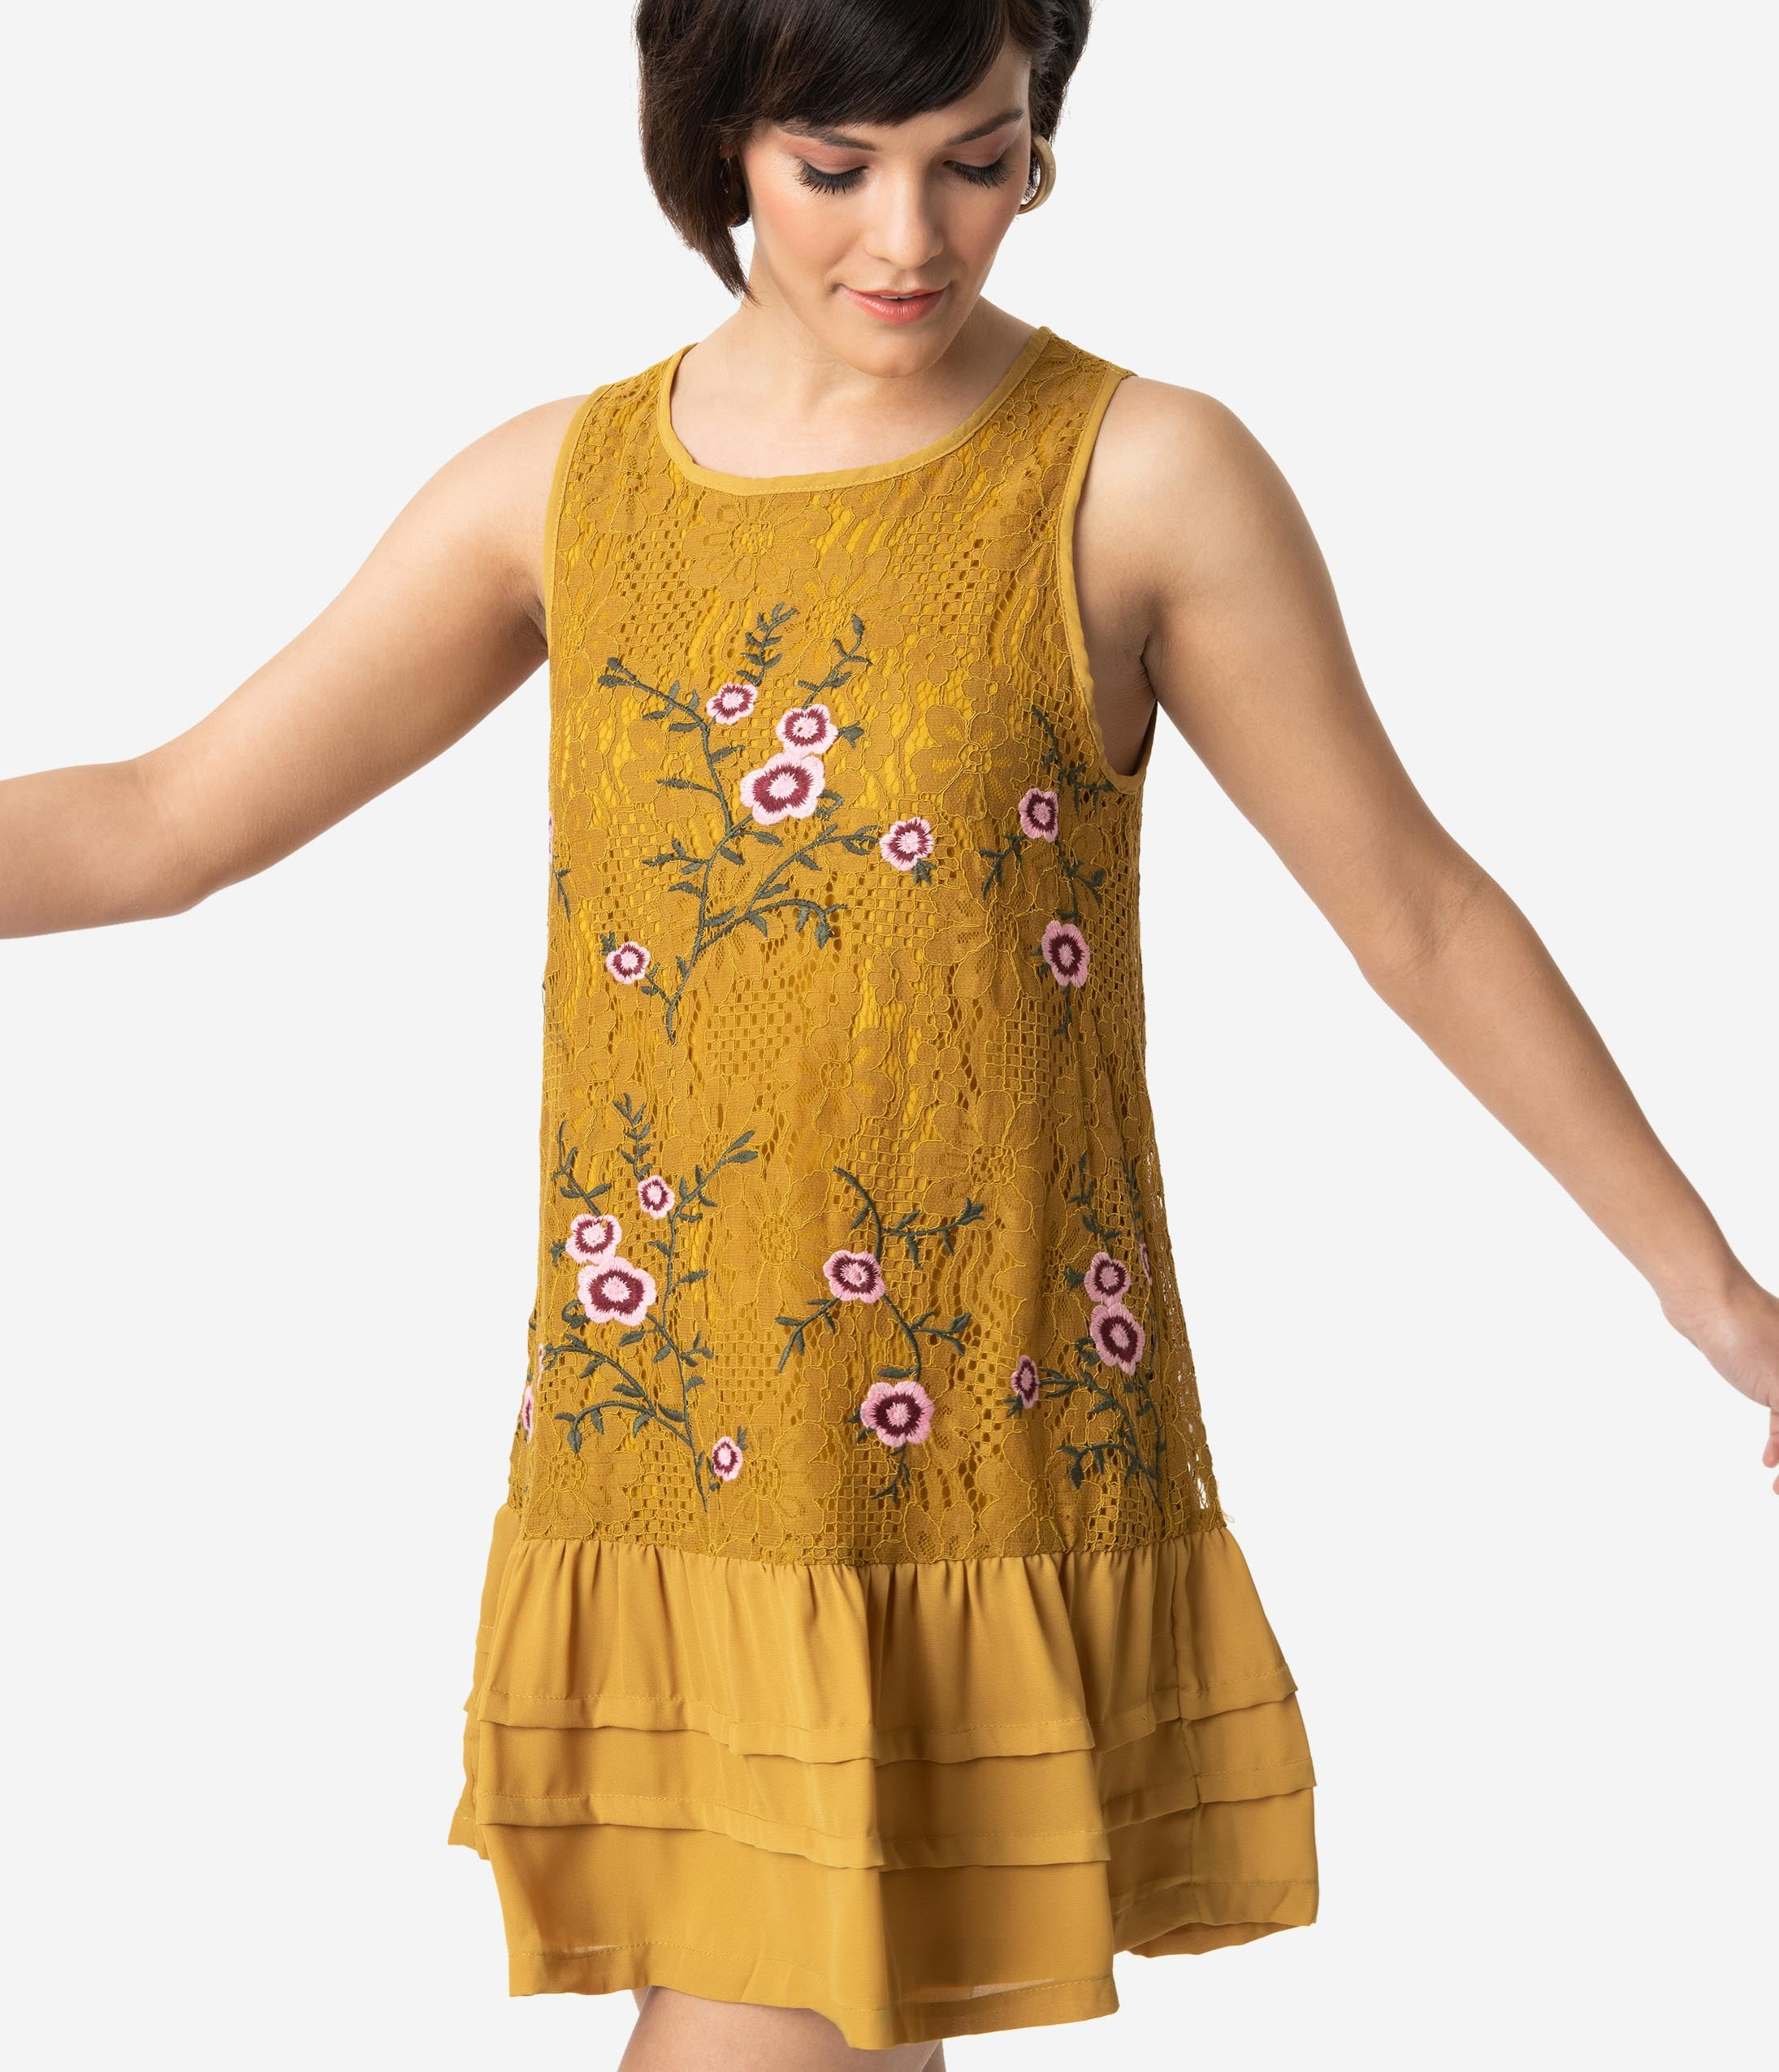 1920s Style Dresses, 20s Dresses 1920S Style Mustard Yellow Floral Embroidered Lace Sleeveless Drop Waist Dress $44.00 AT vintagedancer.com